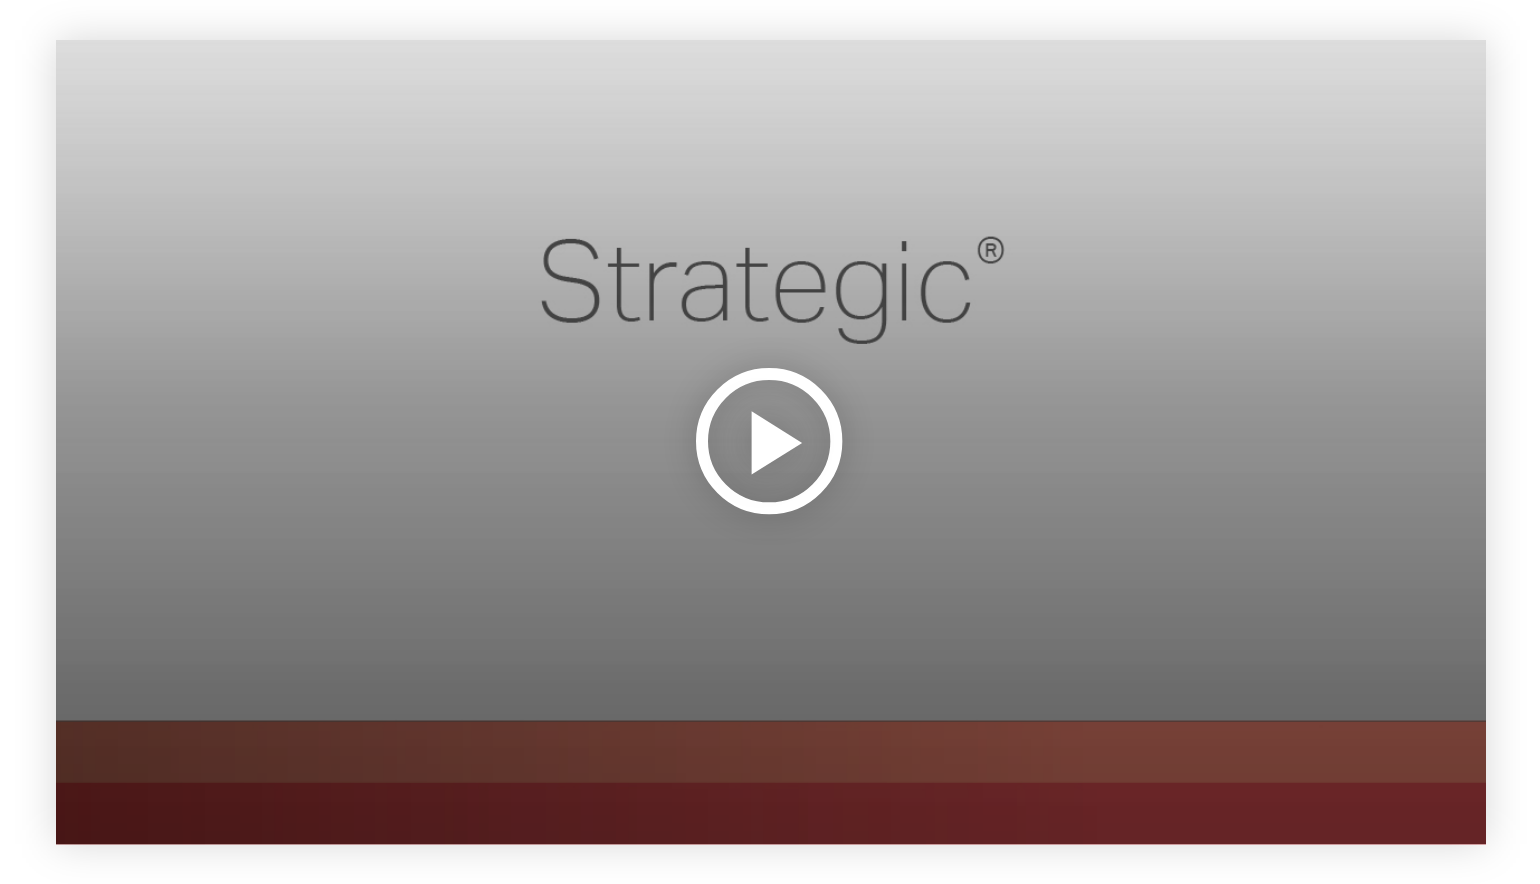 Play video: Strategic - Learn more about your innate talents from Gallup's Clifton StrengthsFinder!